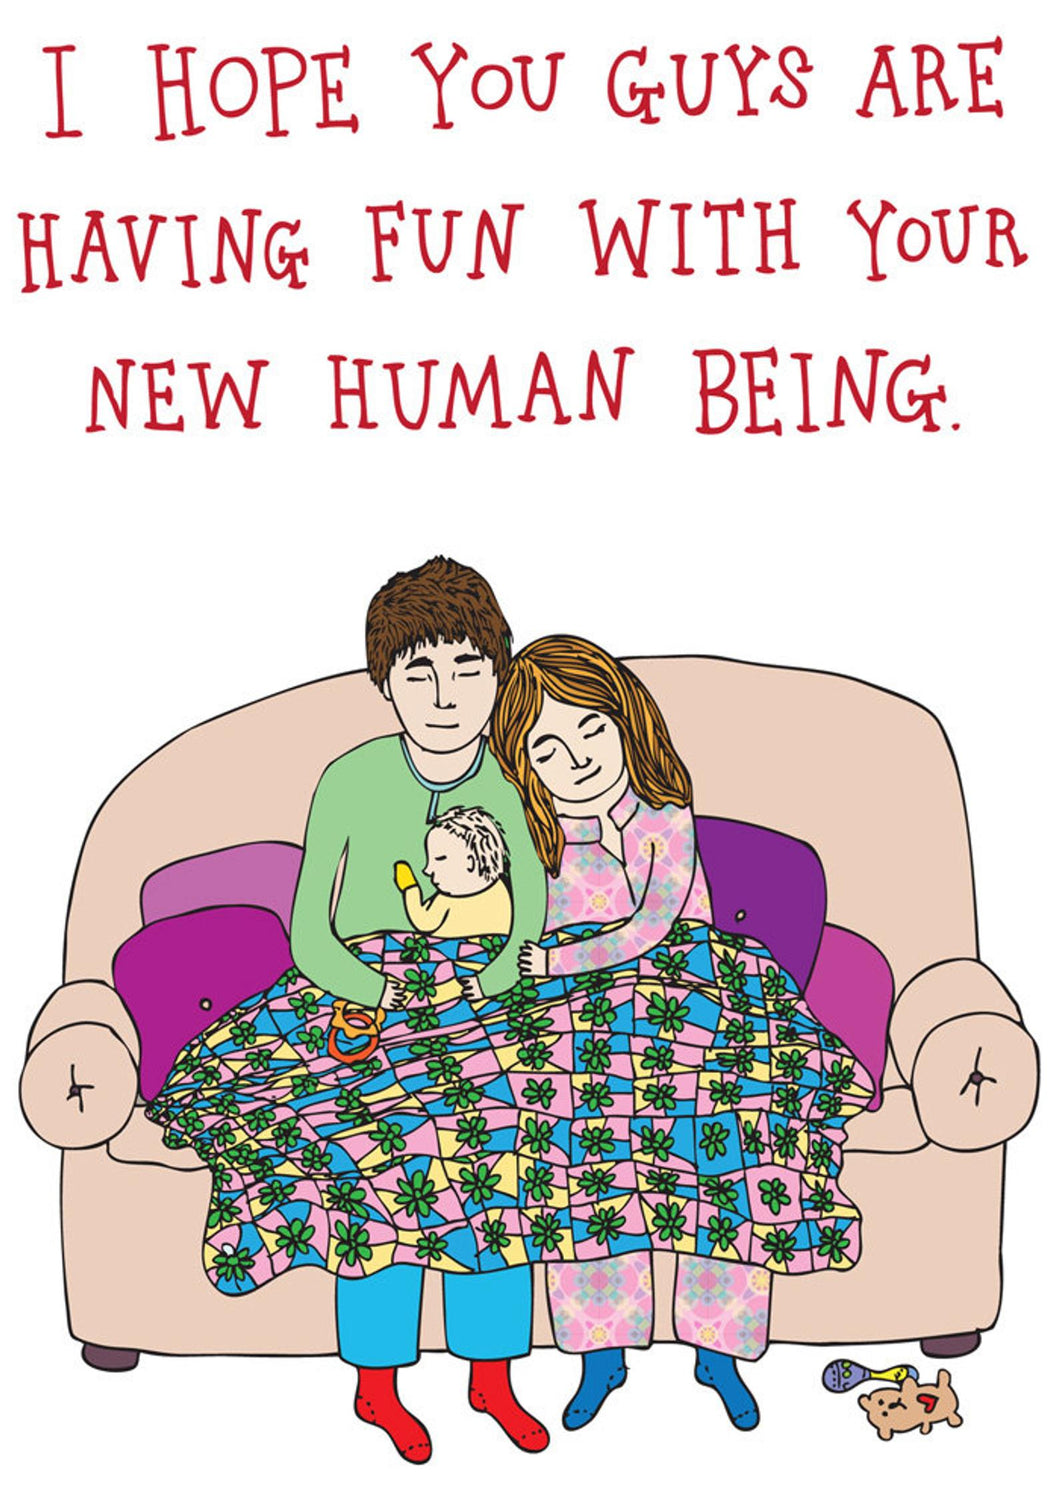 FUN WITH YOUR NEW HUMAN BEING | ABLE + GAME